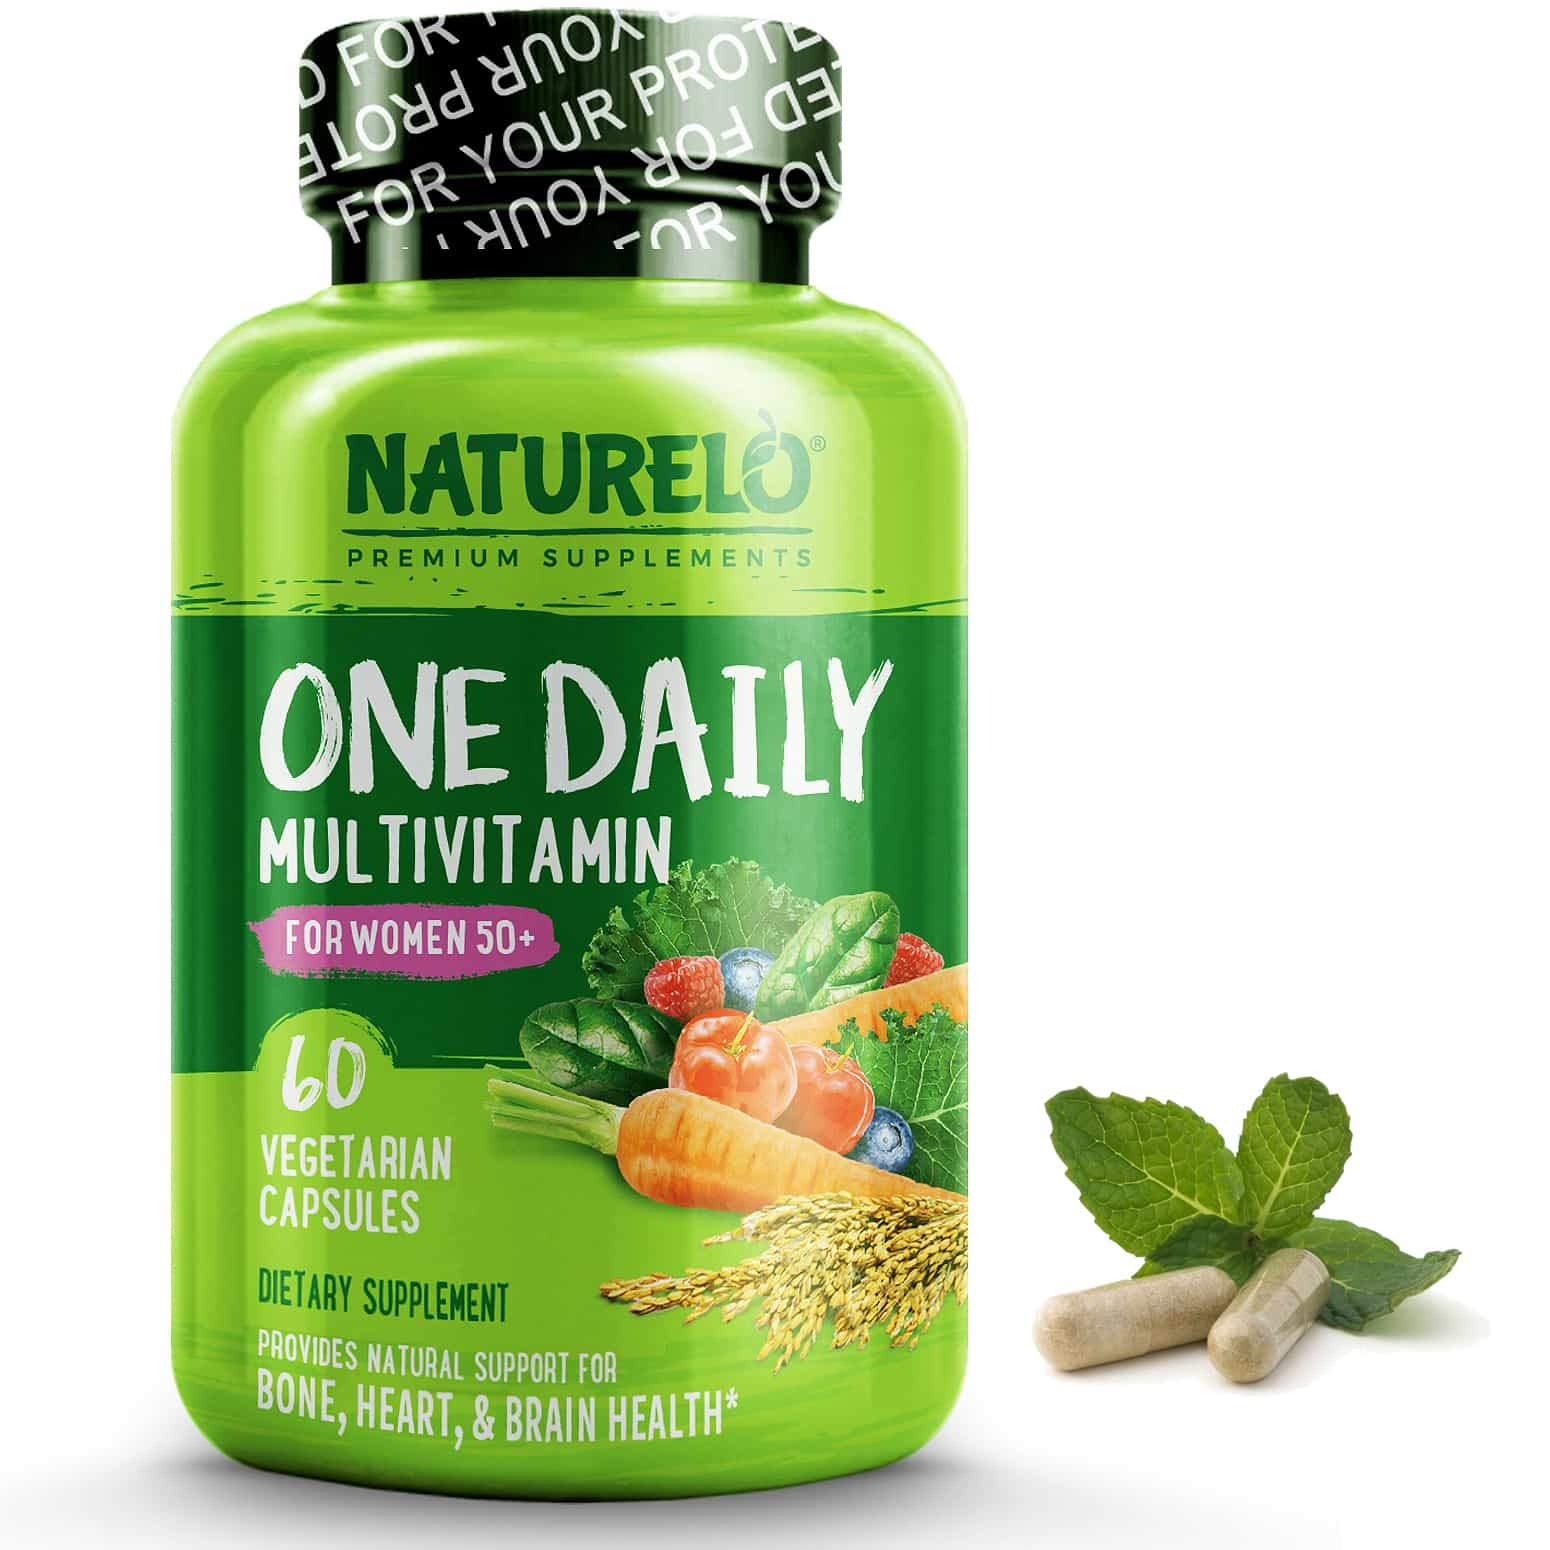 NATURELO One Daily Multivitamin for Women 50+ (Iron Free) - Menopause Support for Women Over 50 - Whole Food Supplement - Non-GMO - No Soy - 60 Capsules | 2 Month Supply